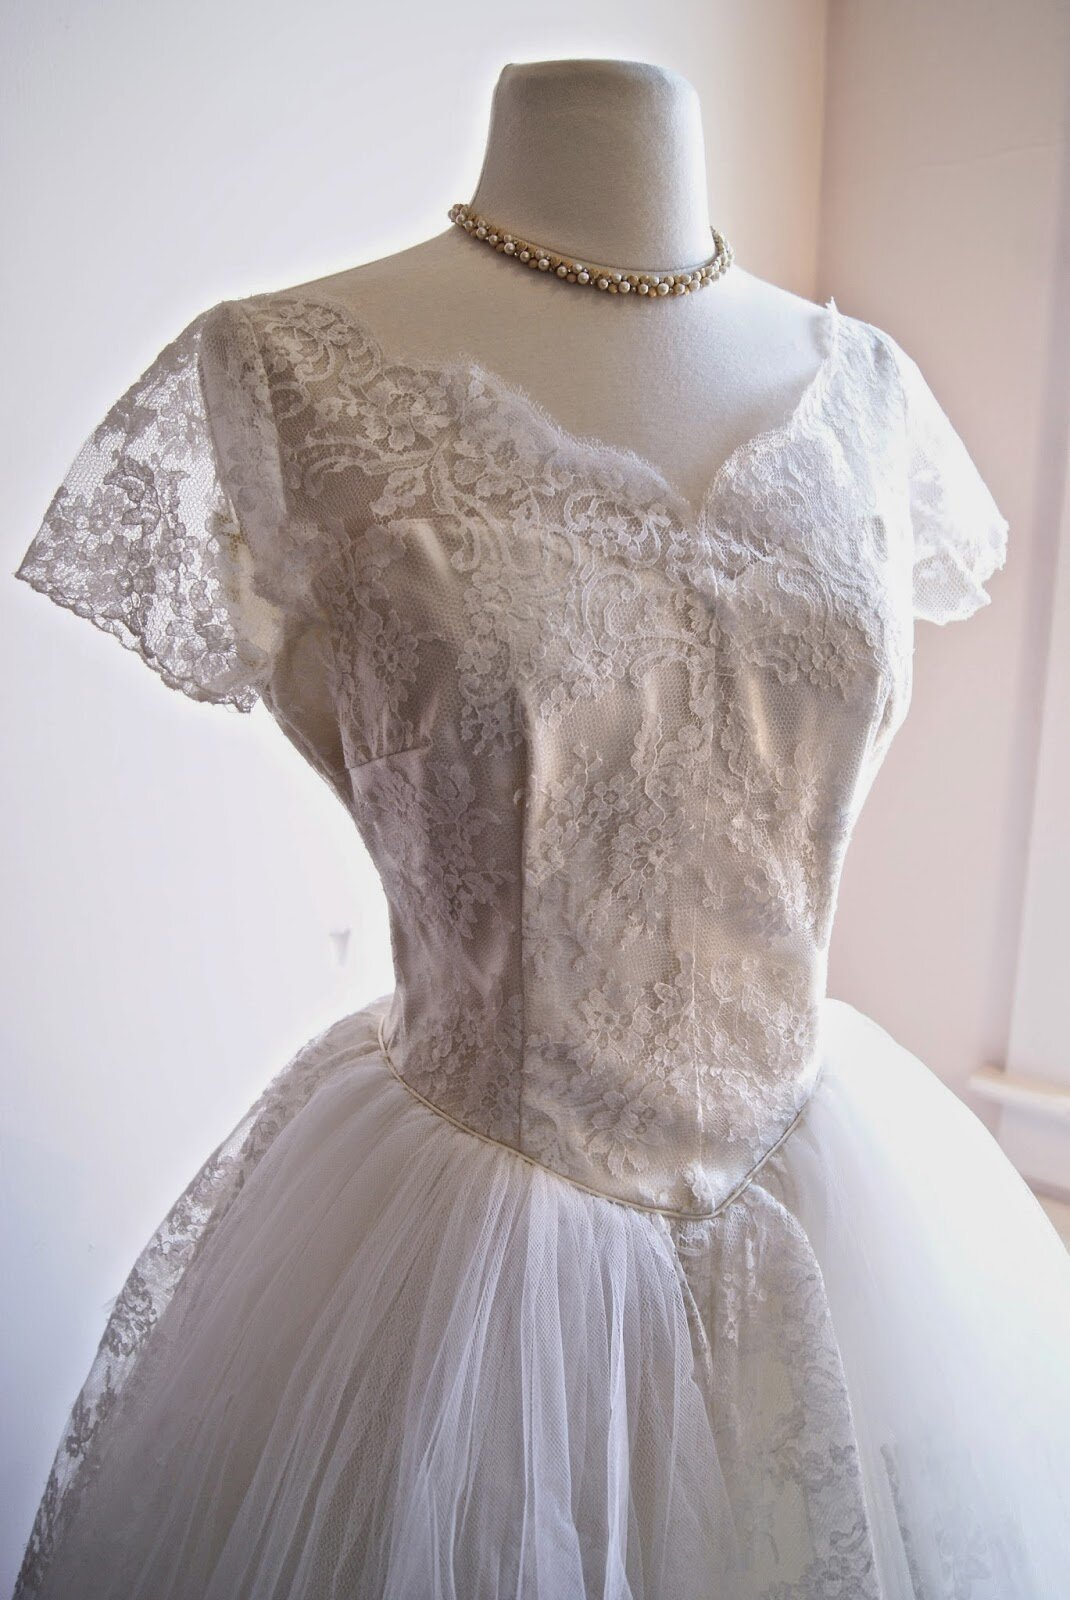 Vintage wedding dresses portland photo - 3